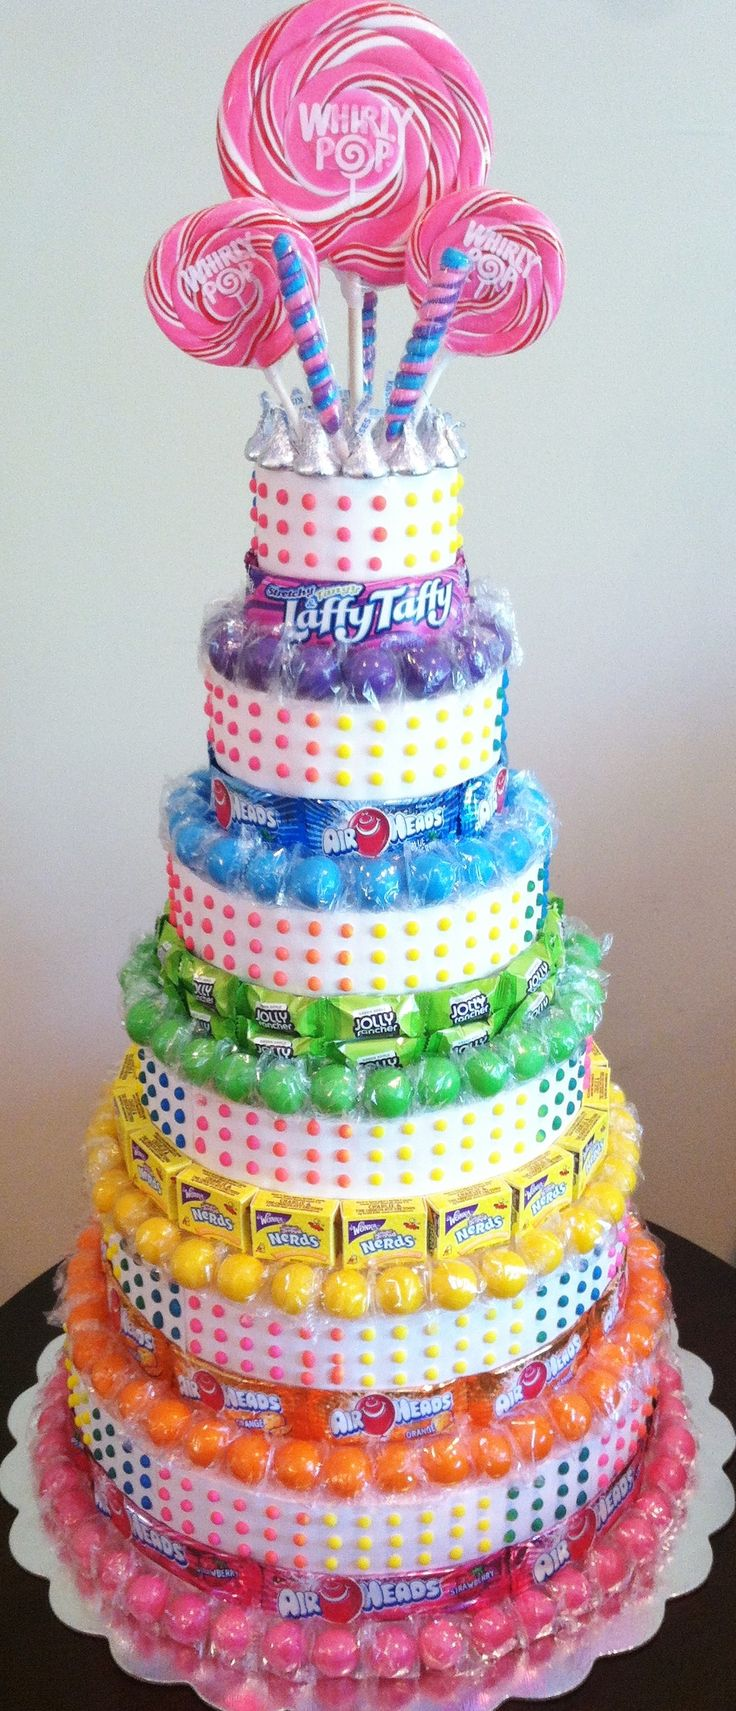 Candy Party! Candy Theme Centerpiece! Candy Cake!